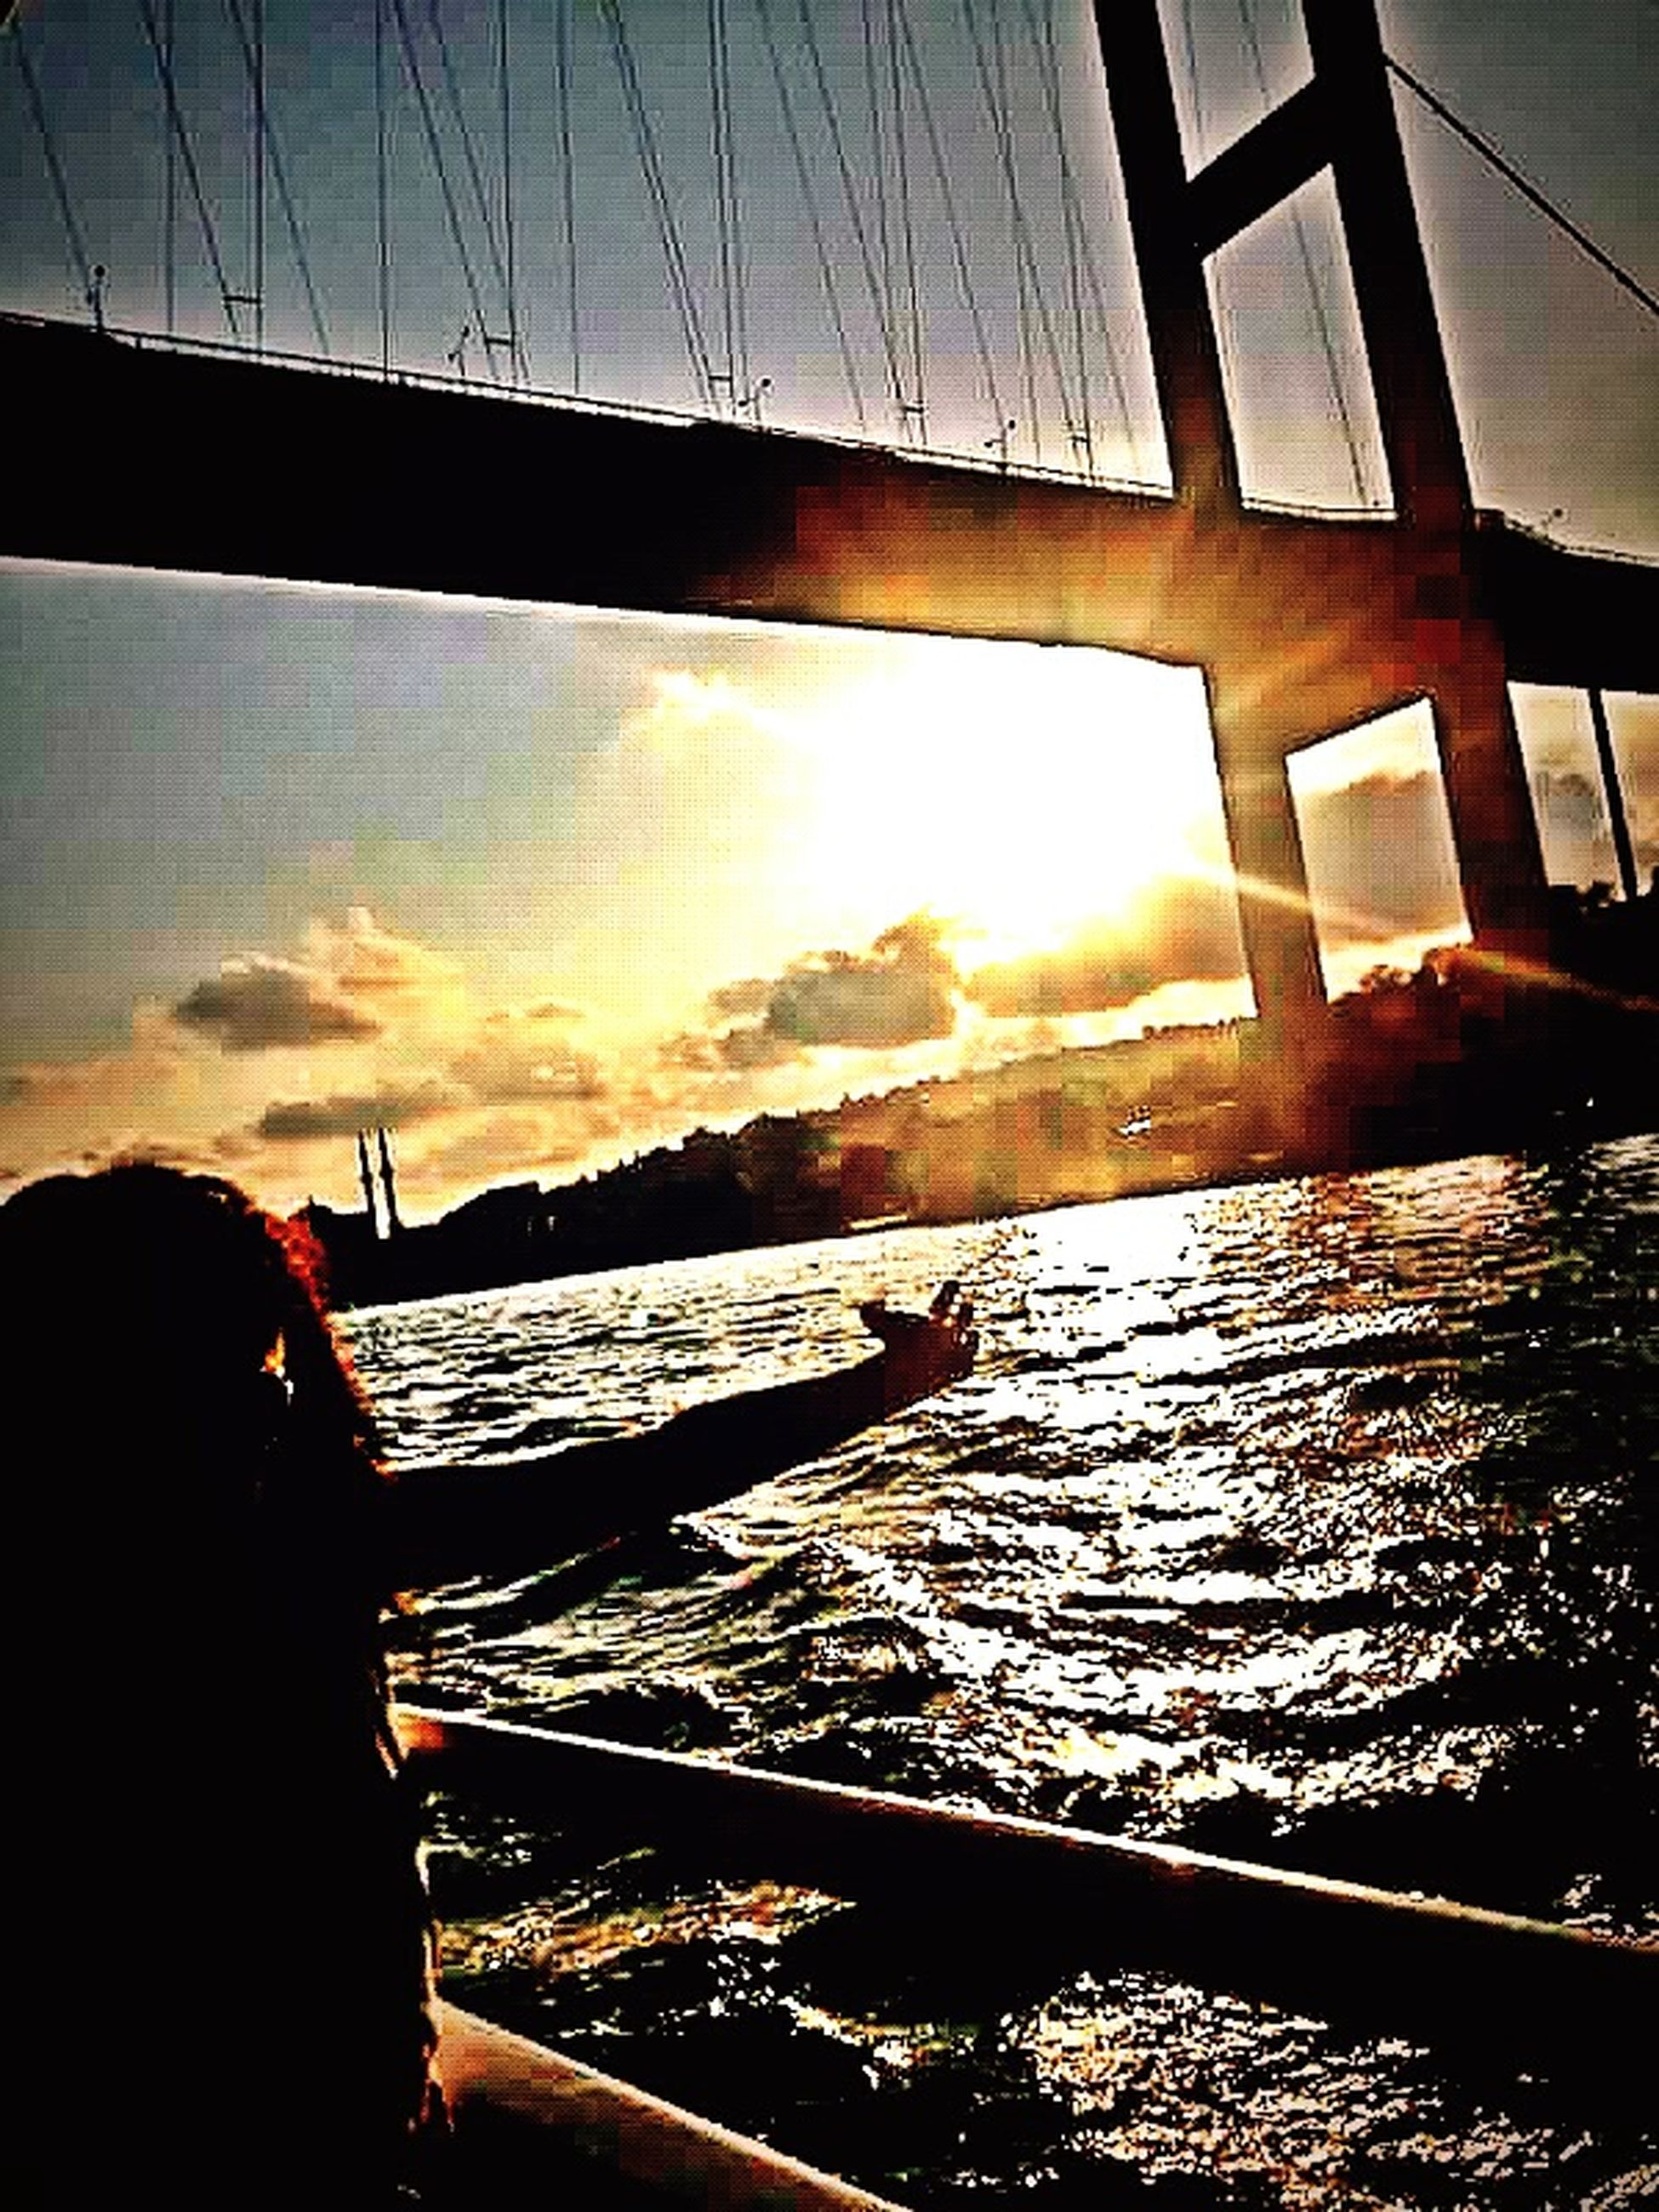 water, transportation, sunset, sky, mode of transport, silhouette, reflection, nautical vessel, sea, built structure, river, sun, travel, sunlight, boat, connection, architecture, vehicle interior